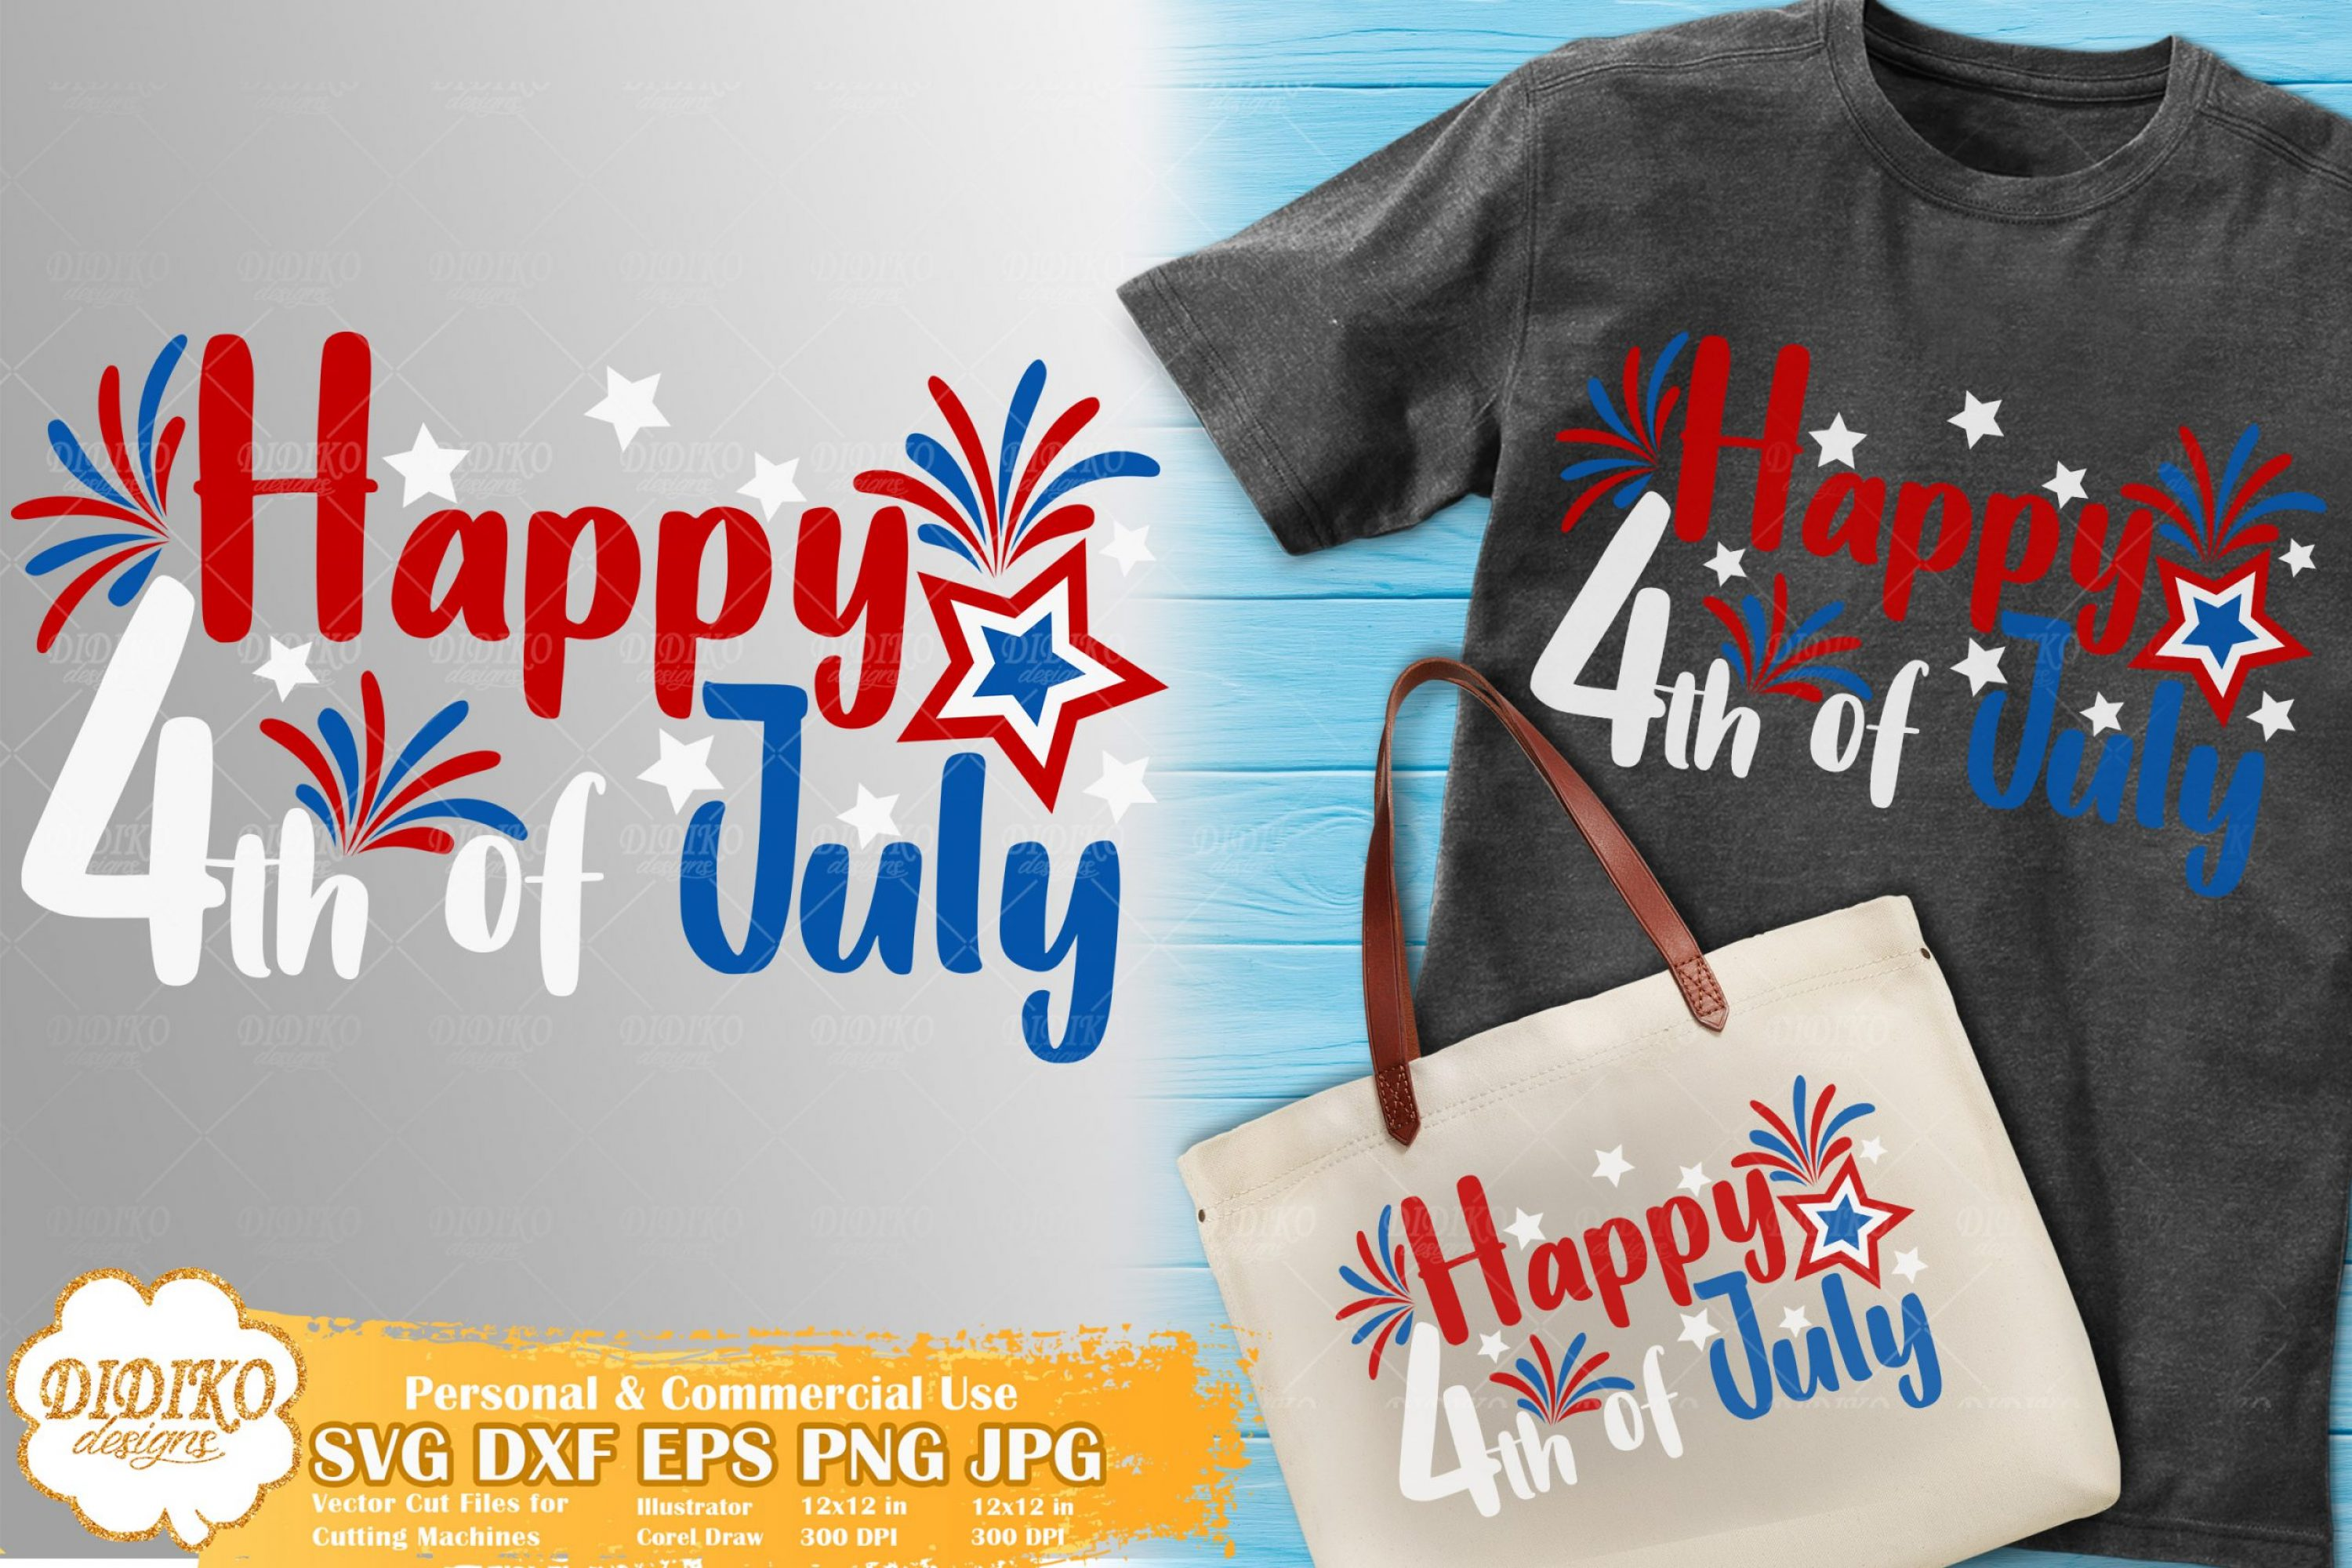 Happy 4th of July SVG | USA Flag SVG | America SVG